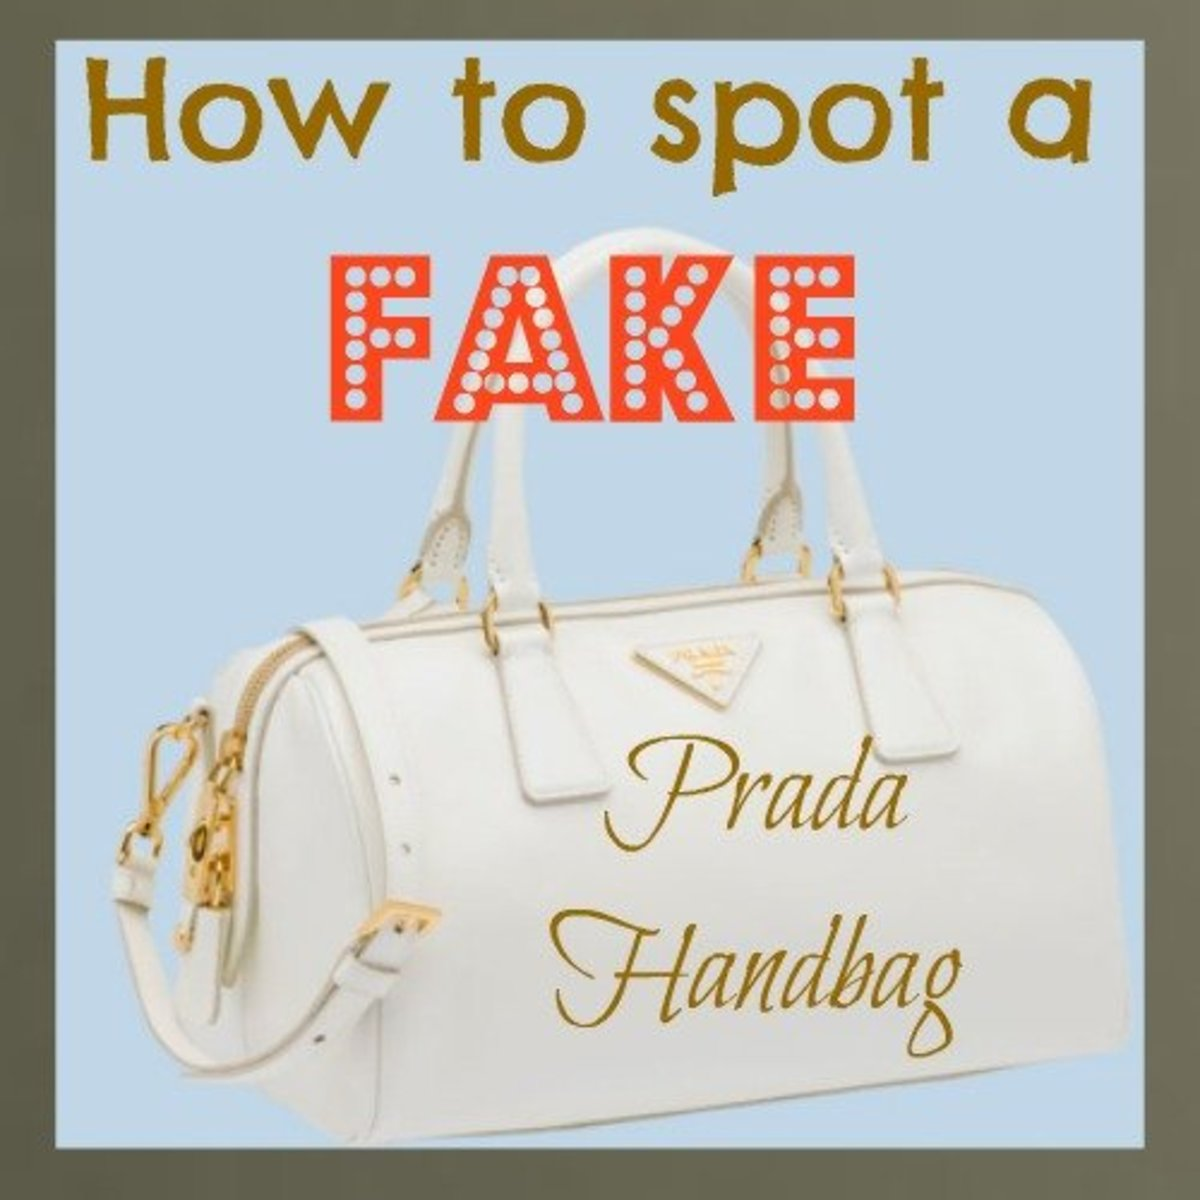 How to spot a fake Prada Handbag 5e02b2c189976